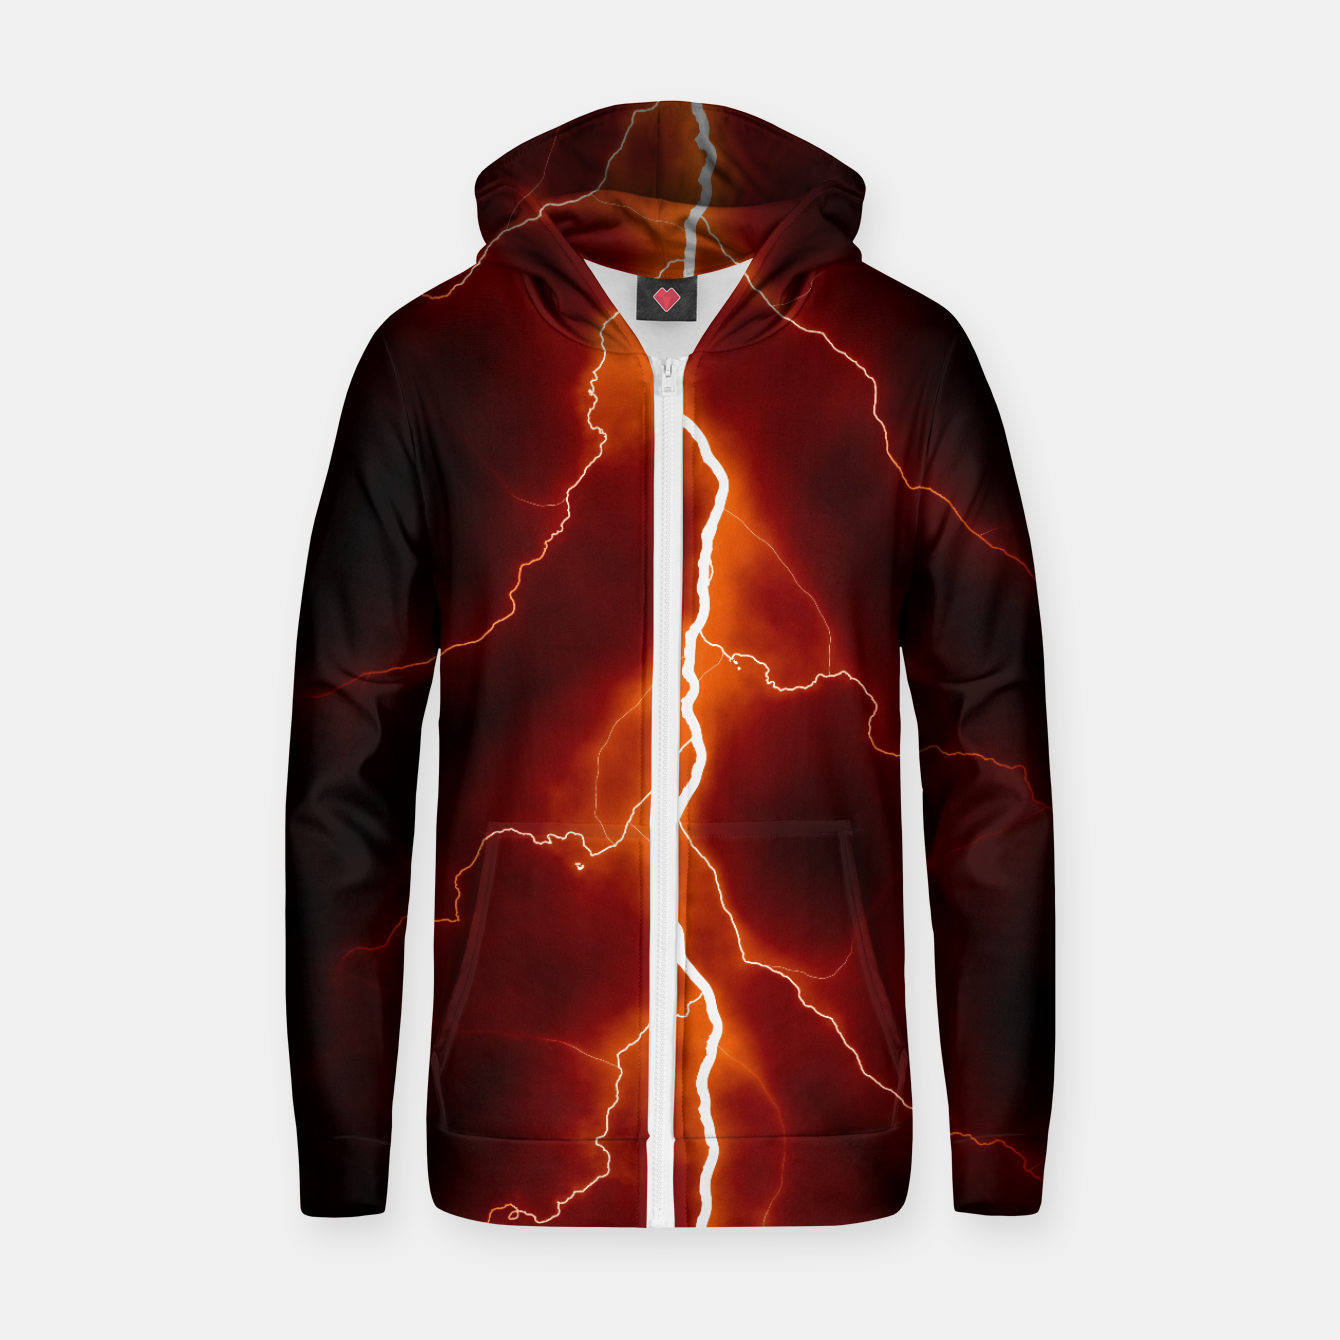 Foto Natural Forked Lightning - 06 Zip up hoodie - Live Heroes